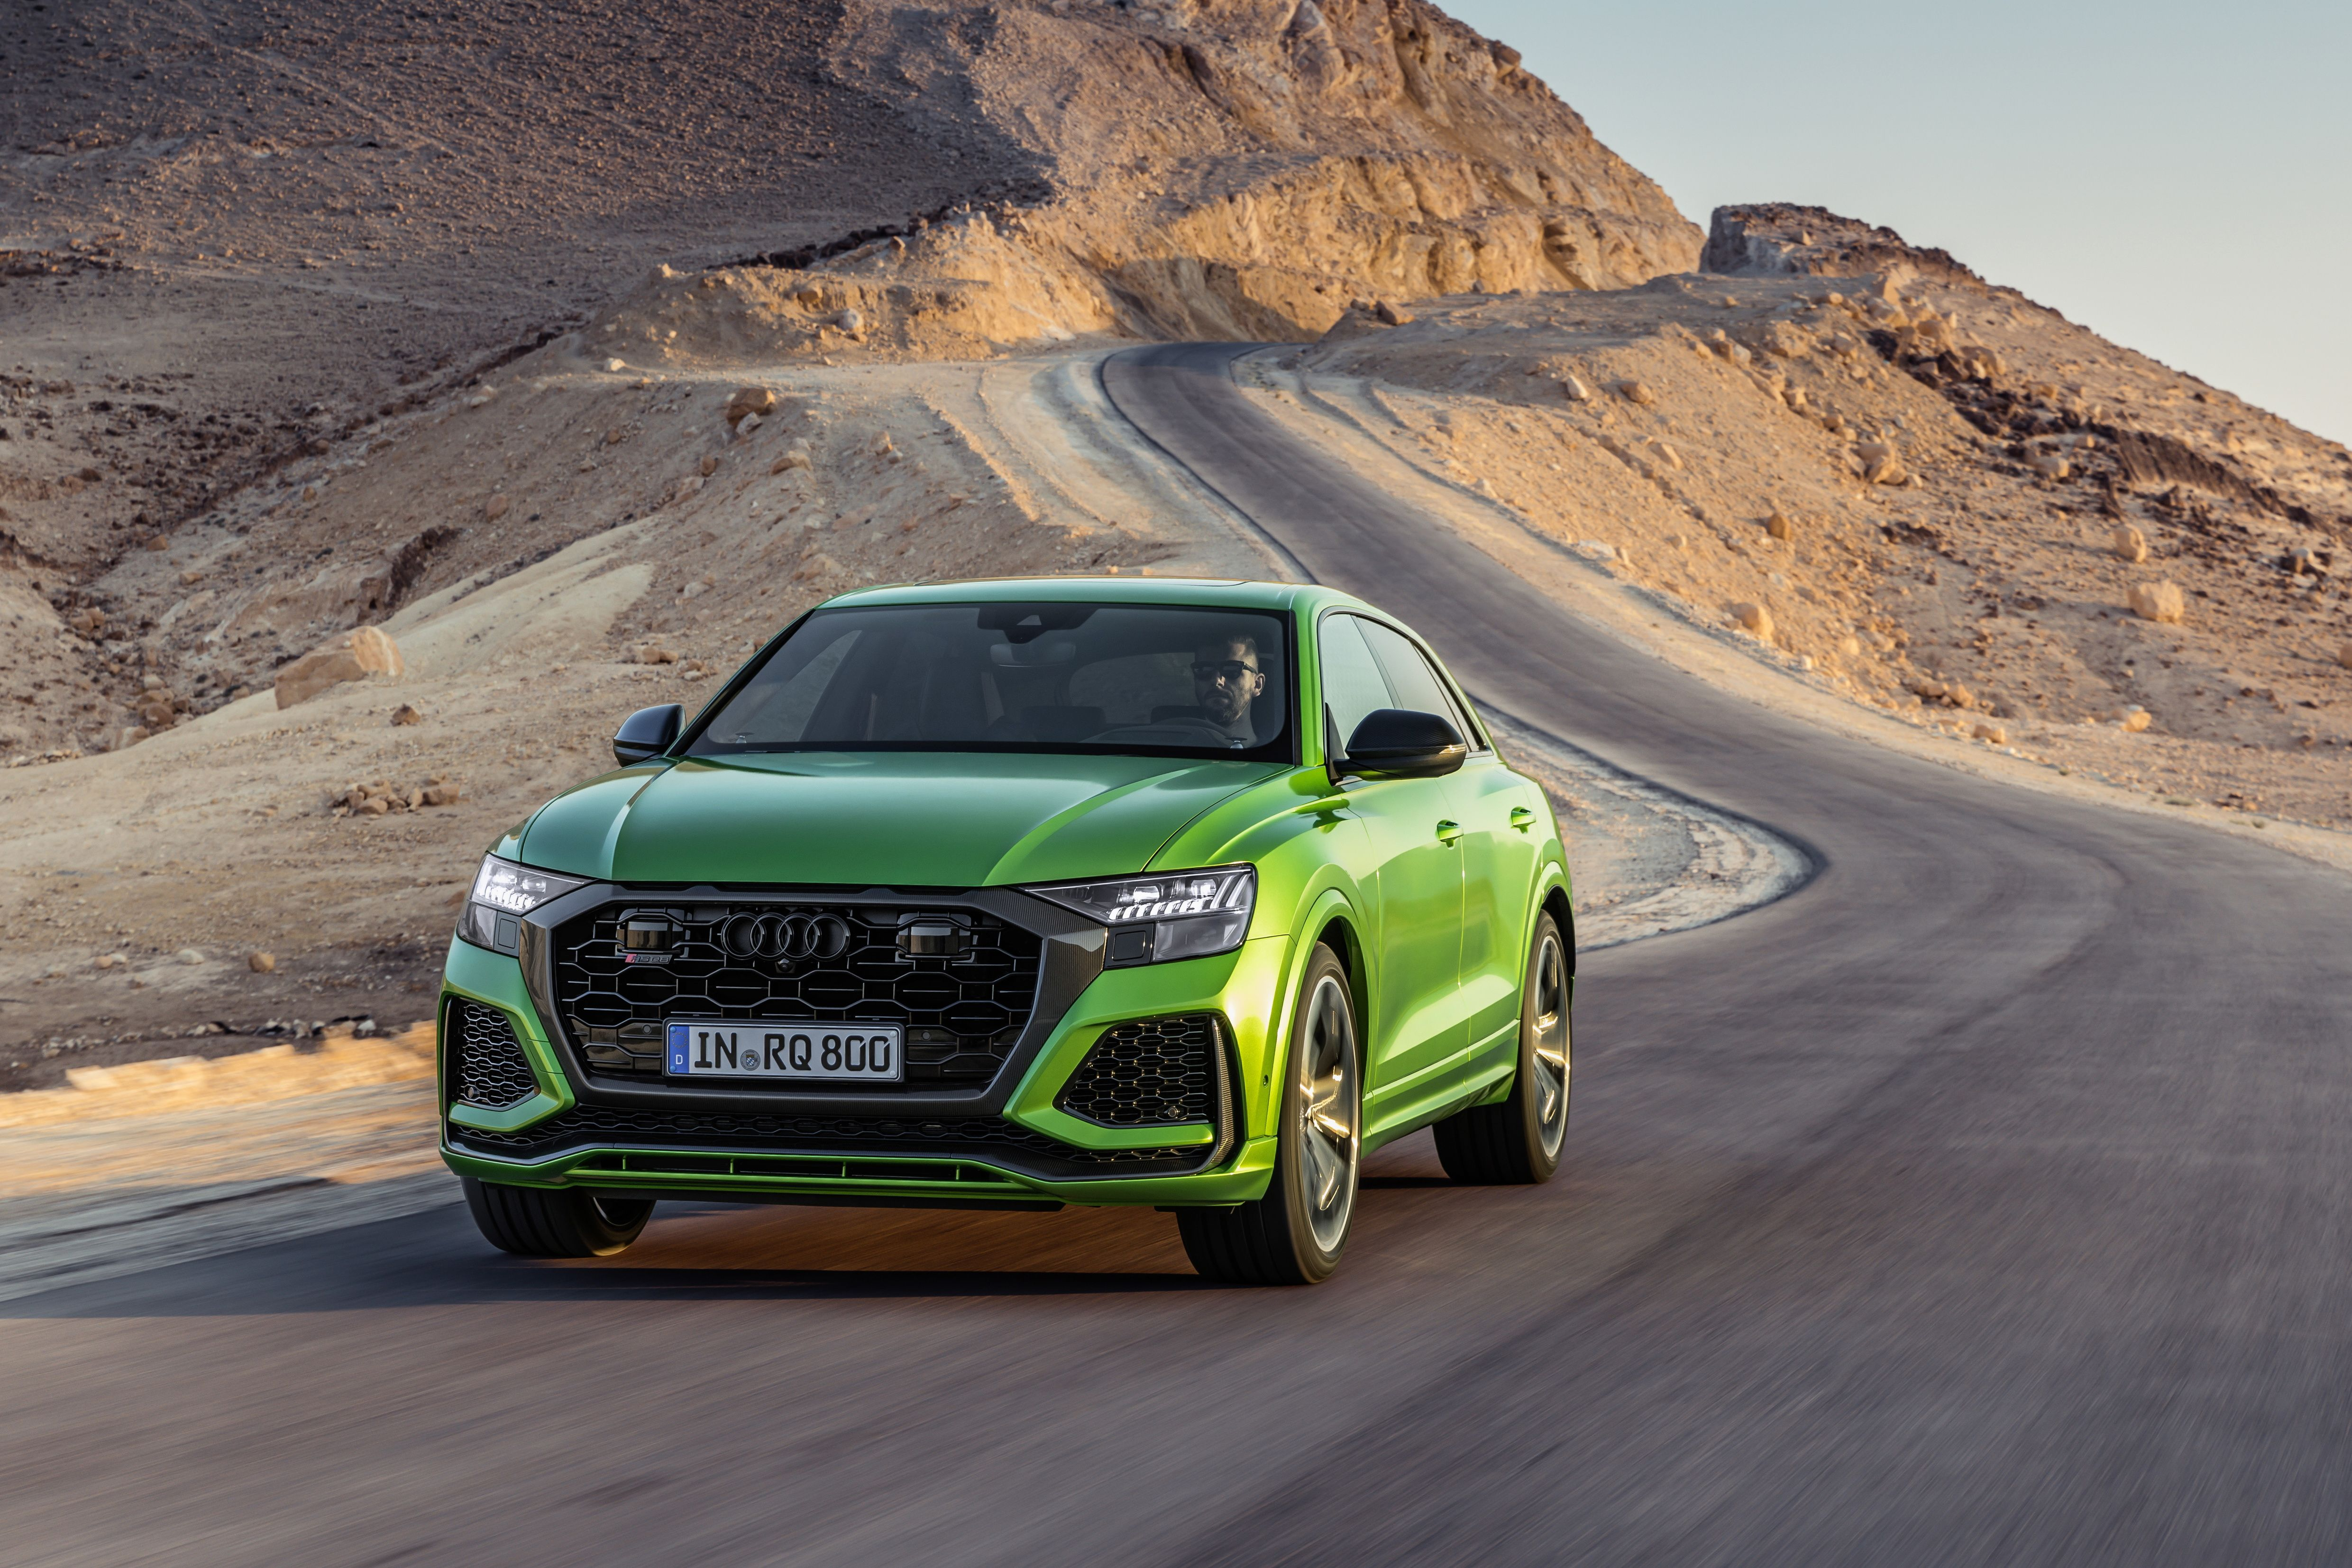 Review The Audi Rs Q8 Is A Lamborghini Suv On A Budget The Globe And Mail